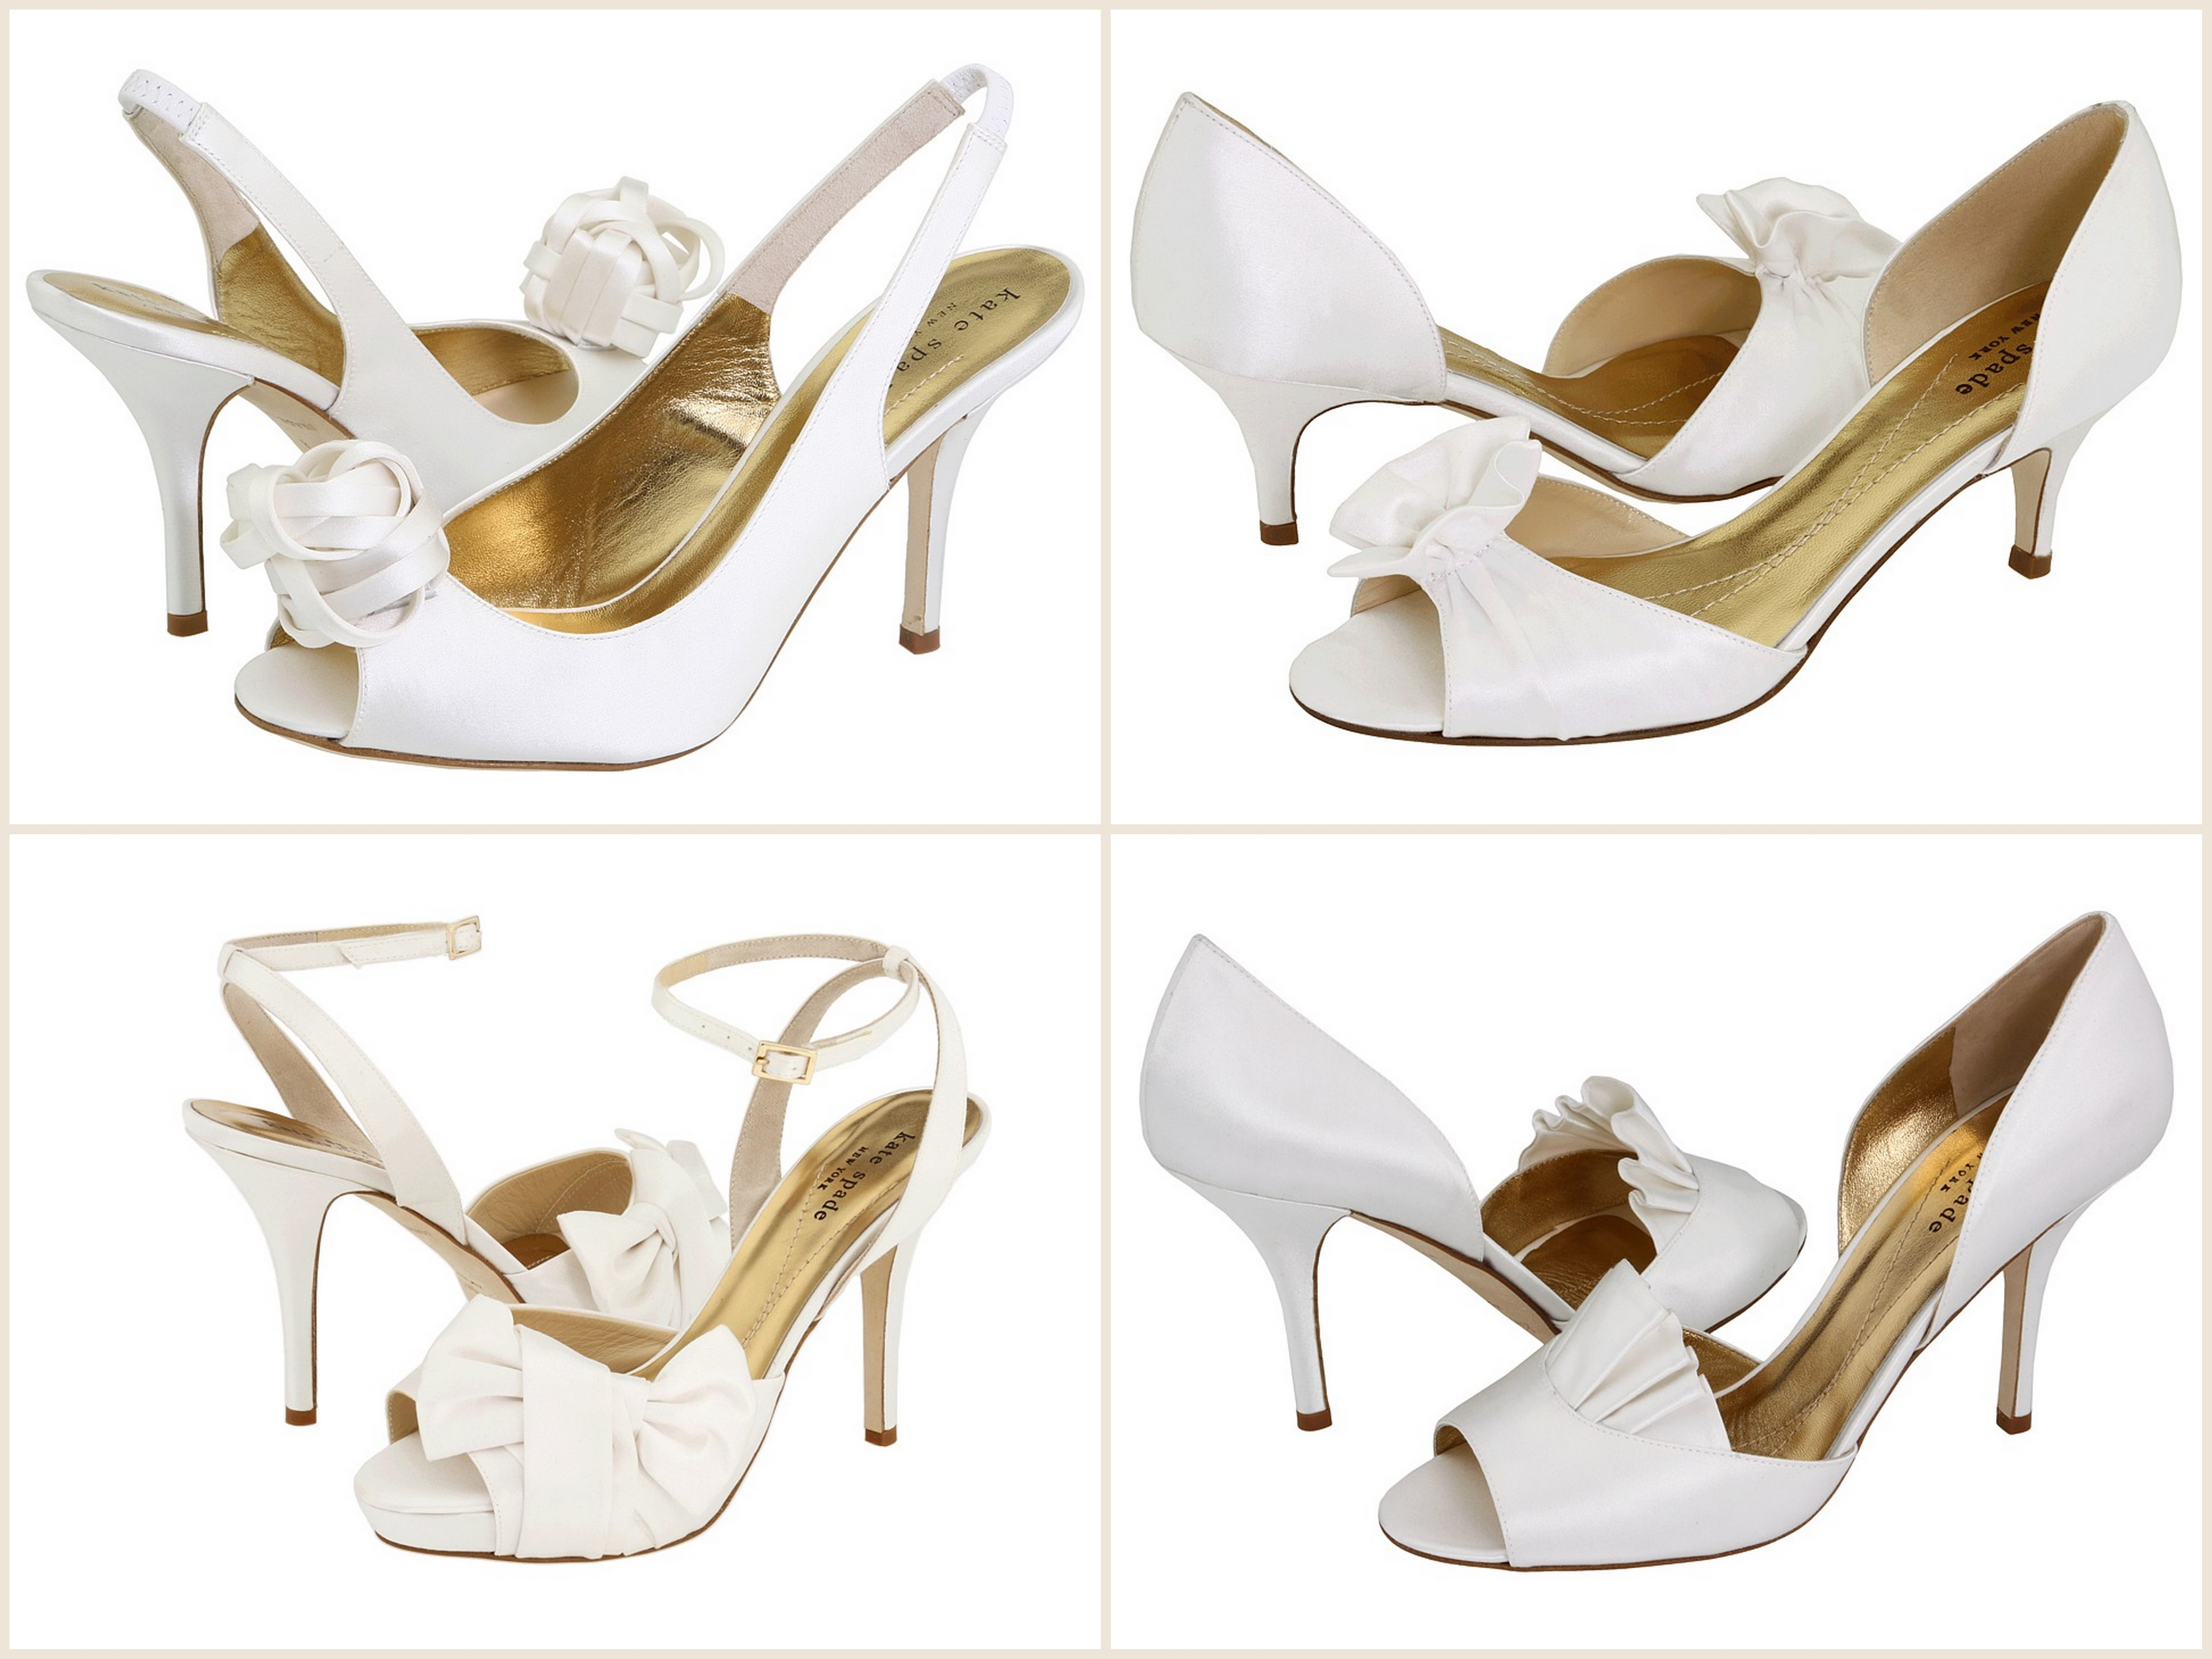 bridal shoes kate spade wedding shoes Kate Spade clockwise starting from top left Christa Evie Chrisette Gracious 2